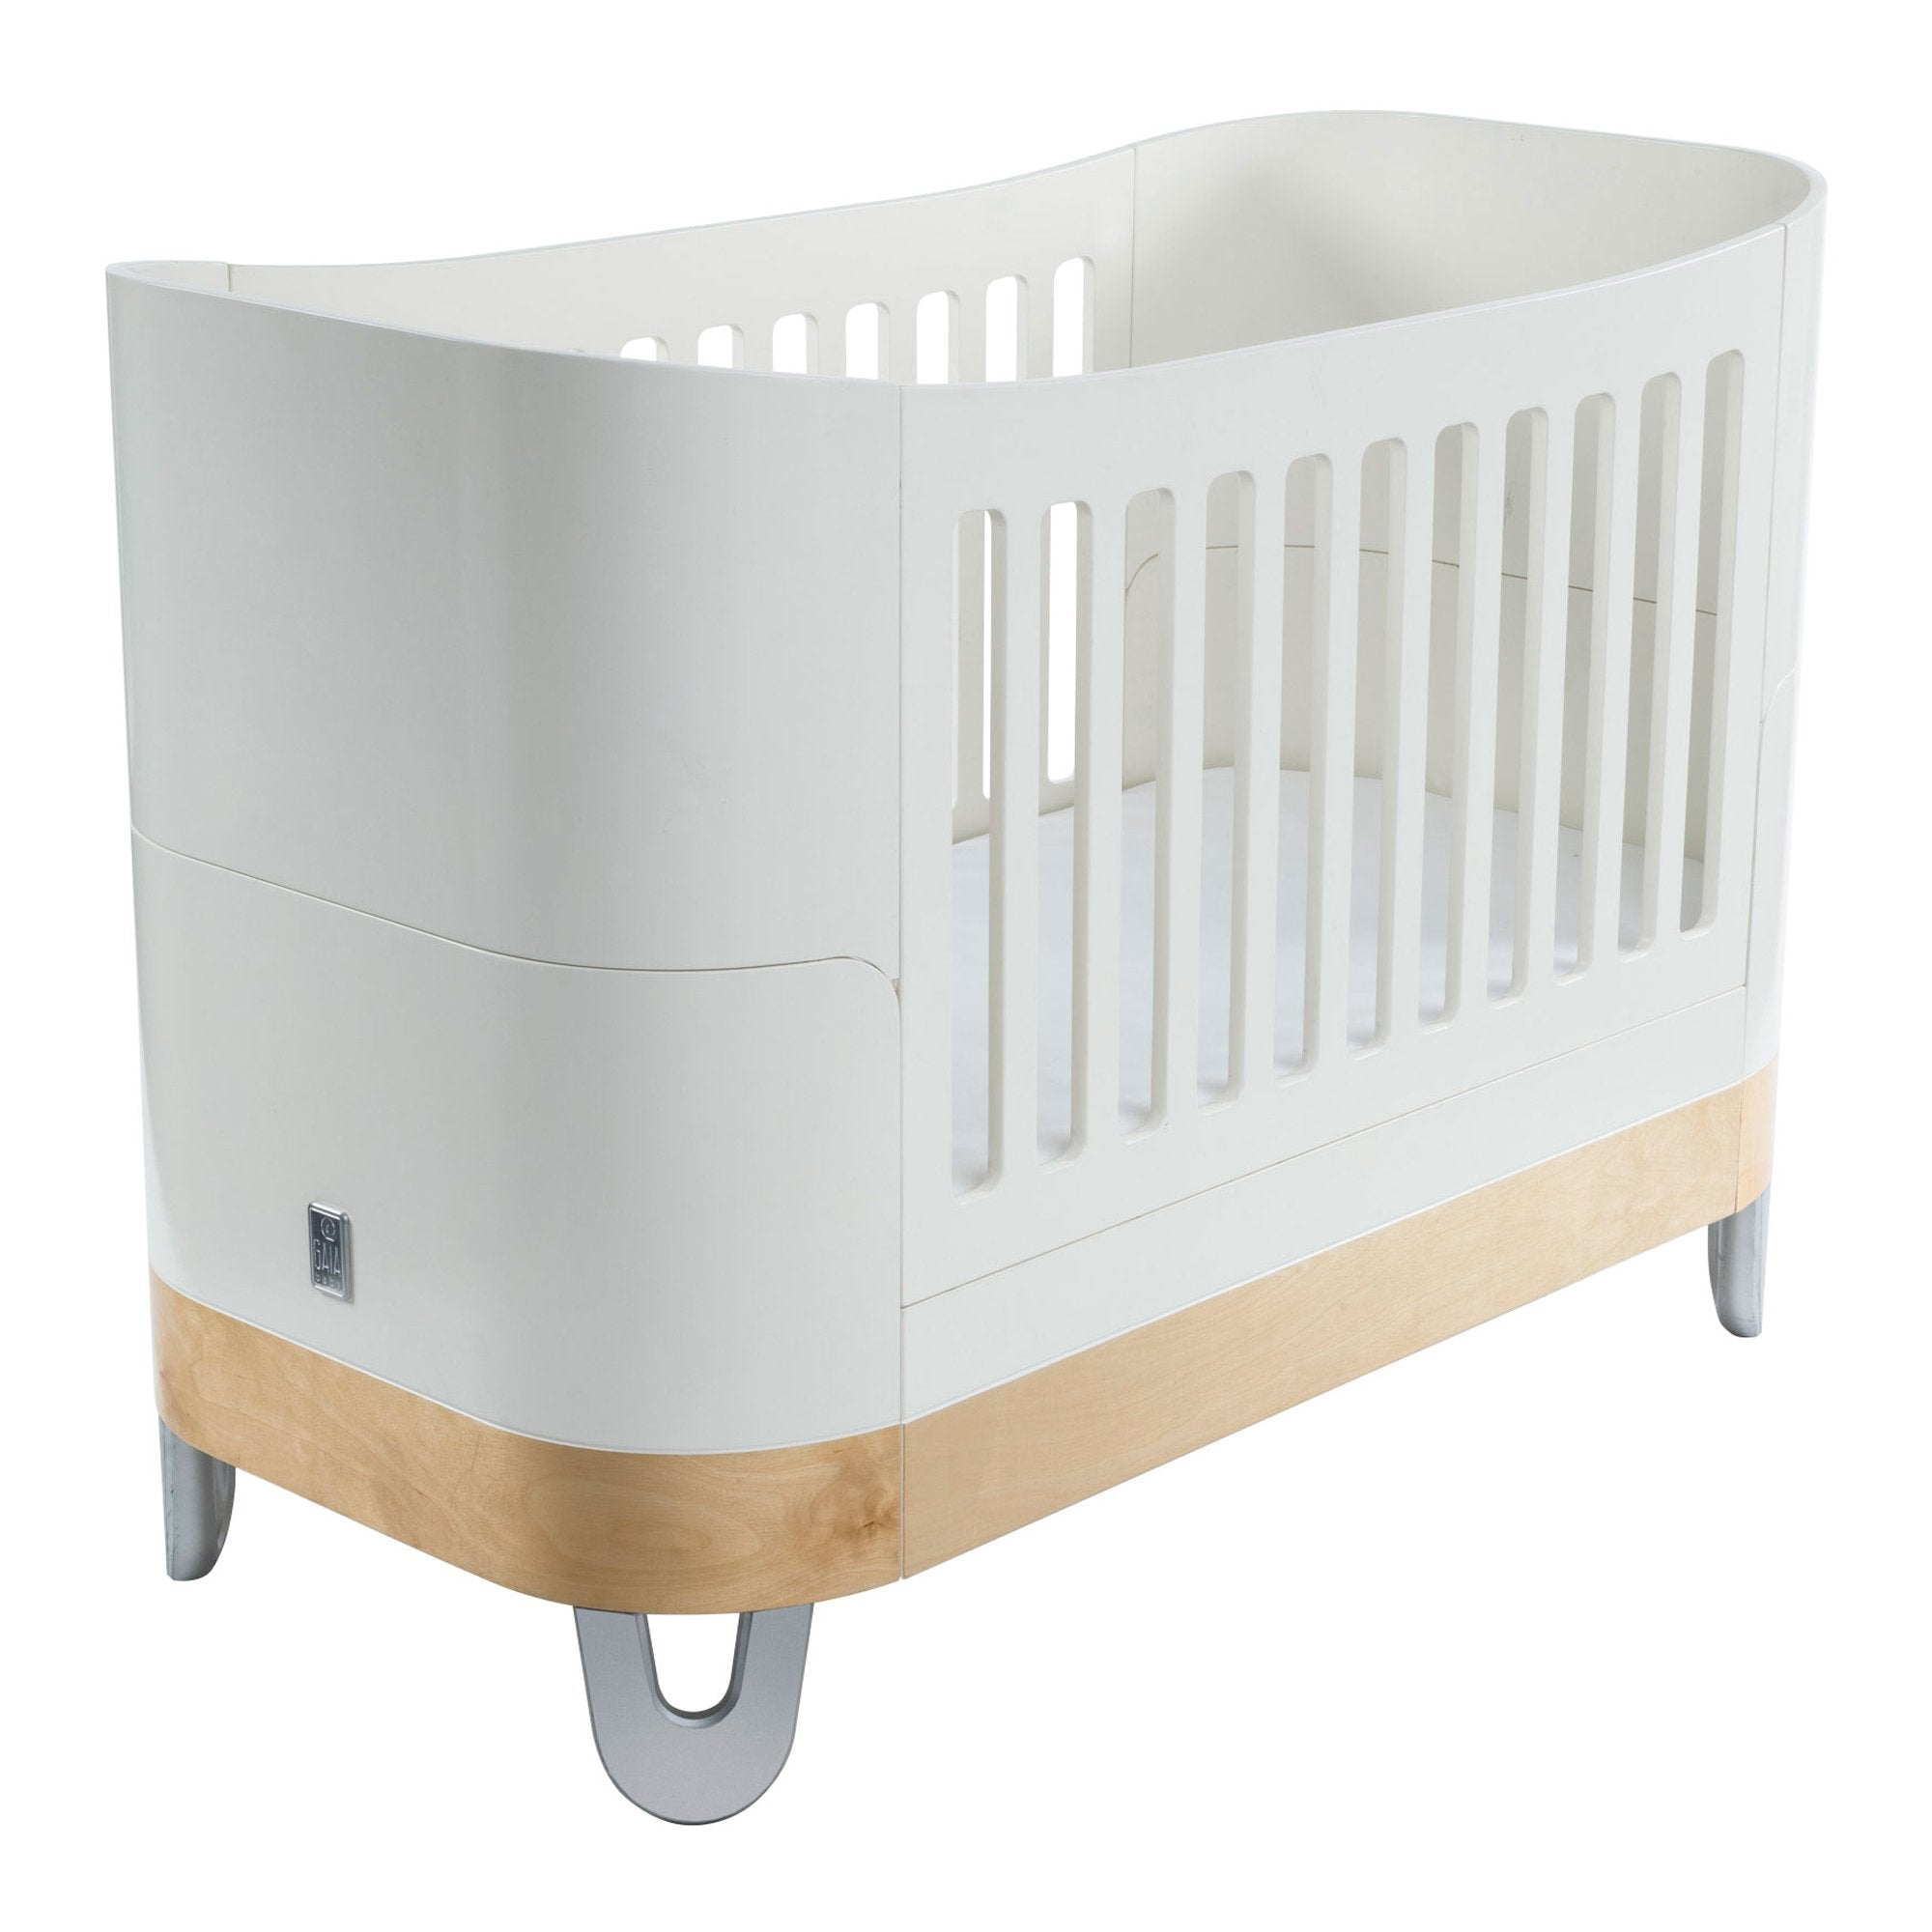 Gaia Serena Complete Sleep+ /Mini White/Natural - Pushchair Expert